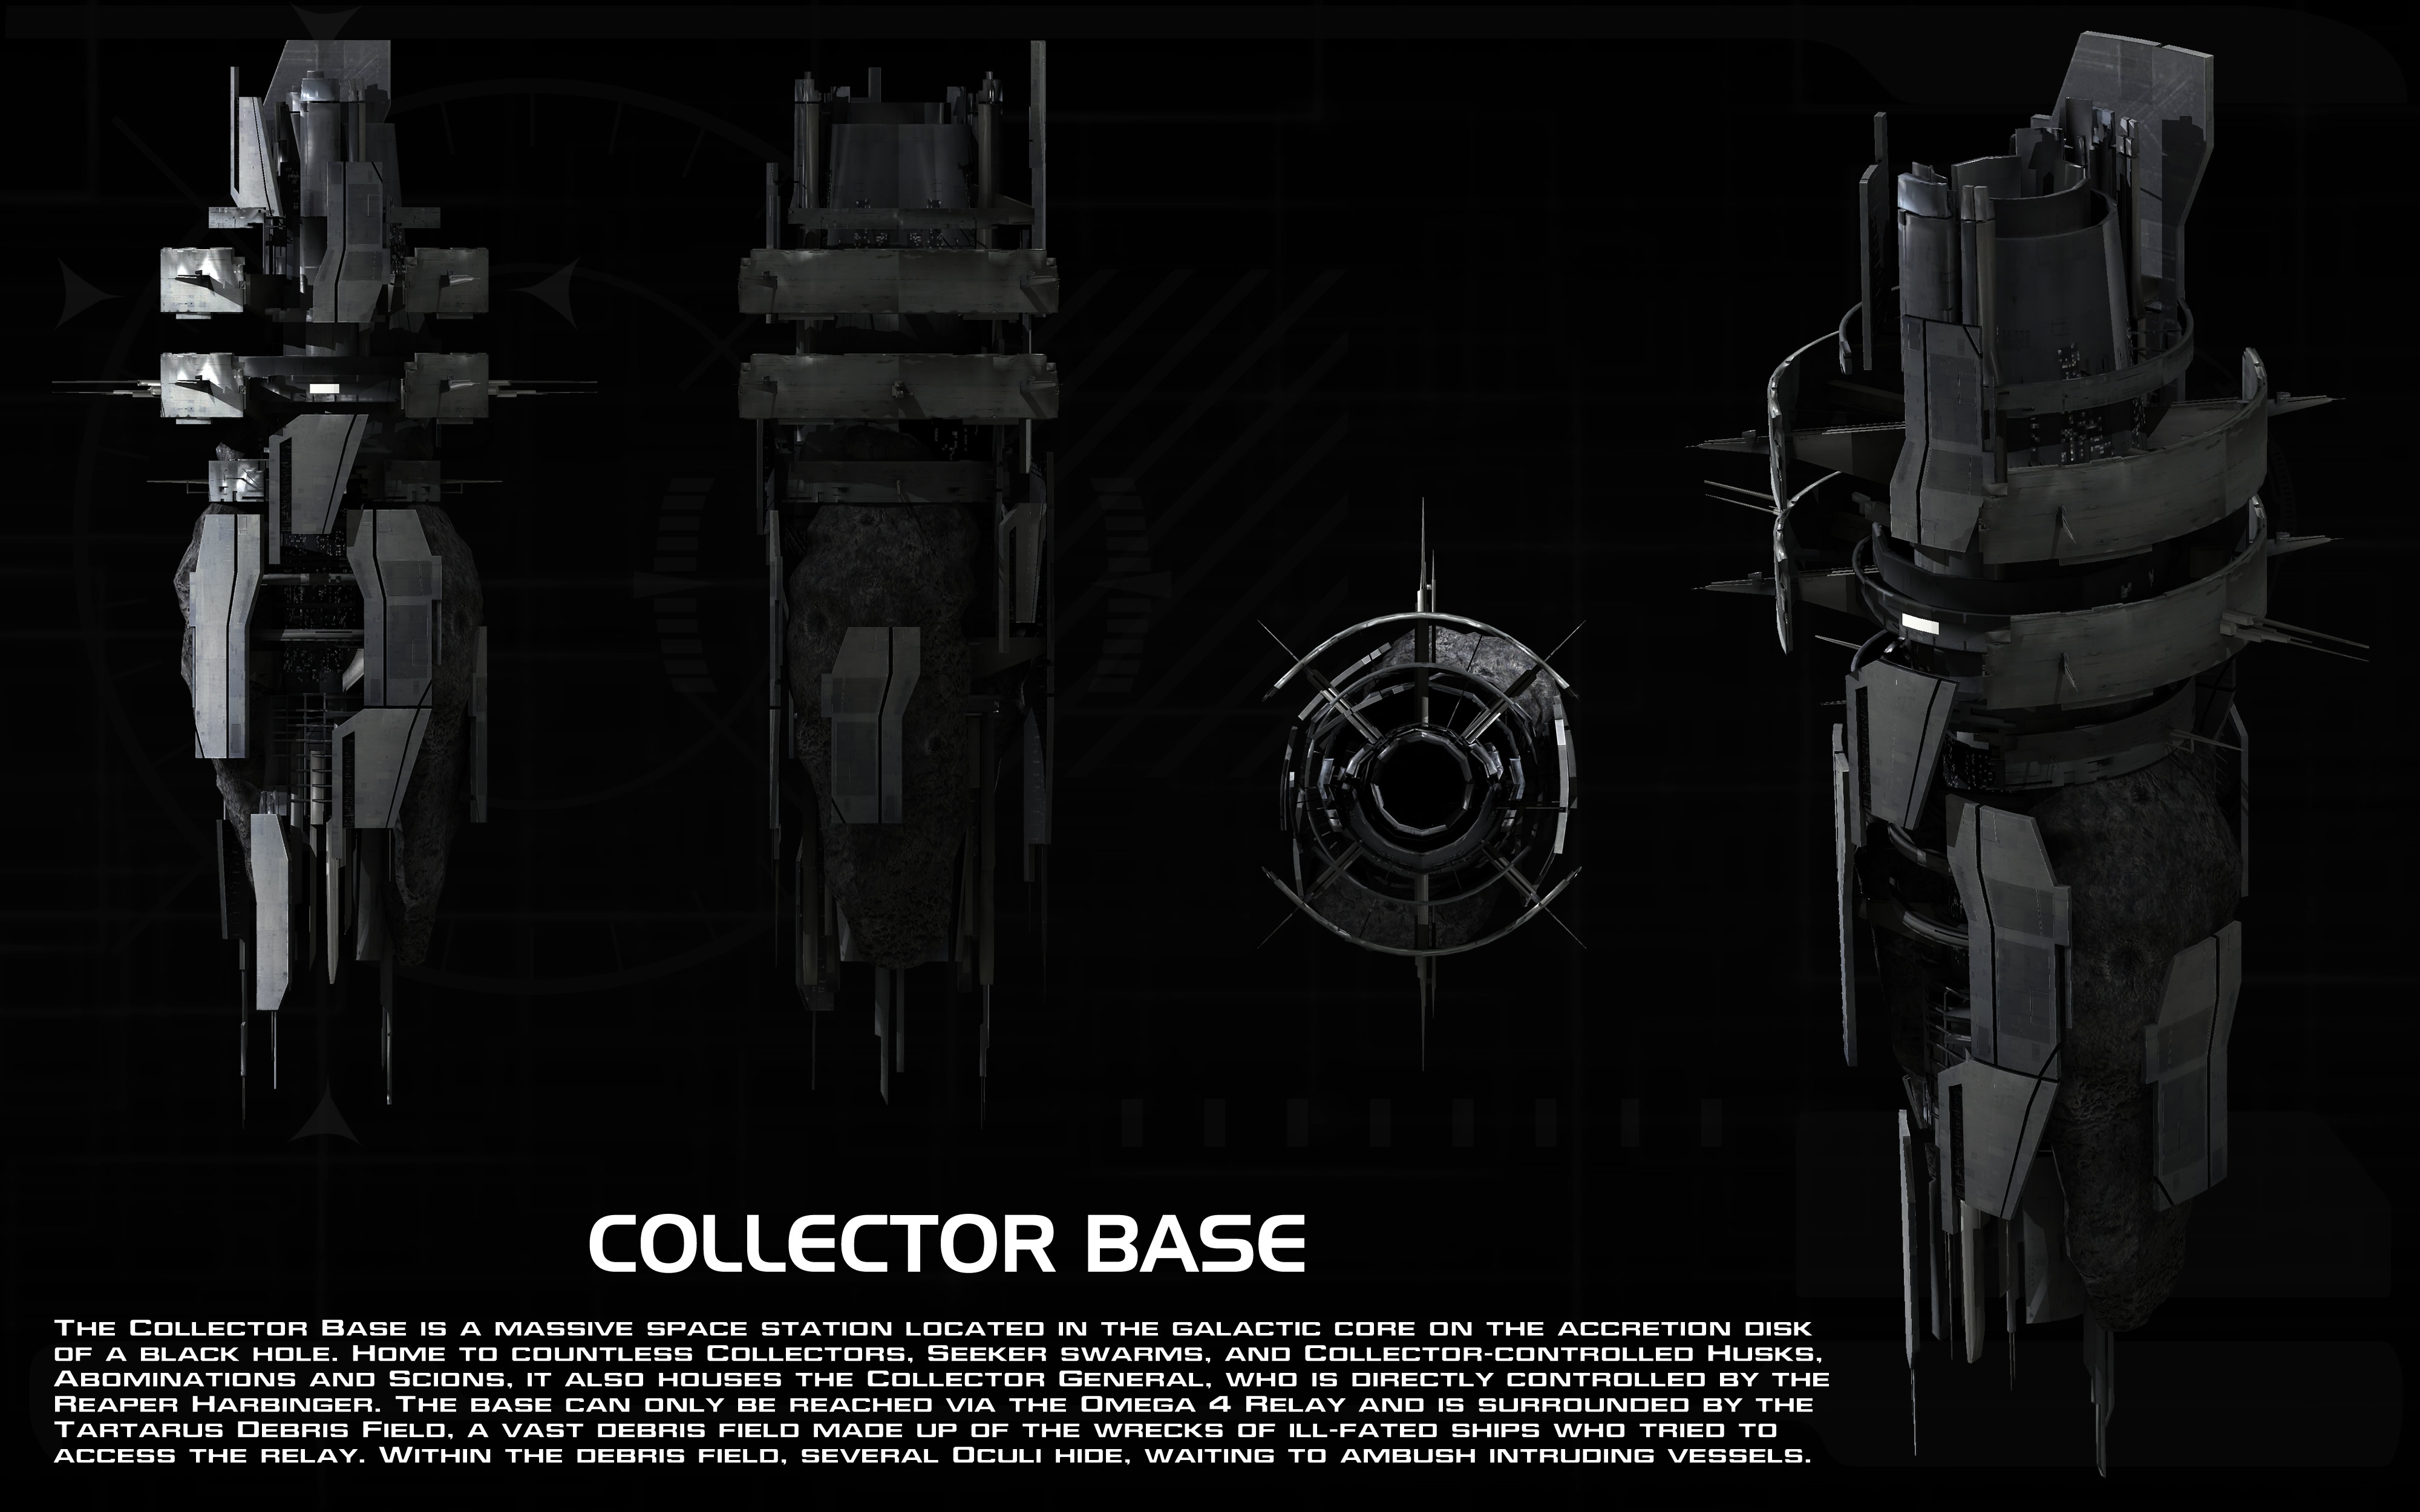 Collector Base Ortho By Unusualsuspex On DeviantArt